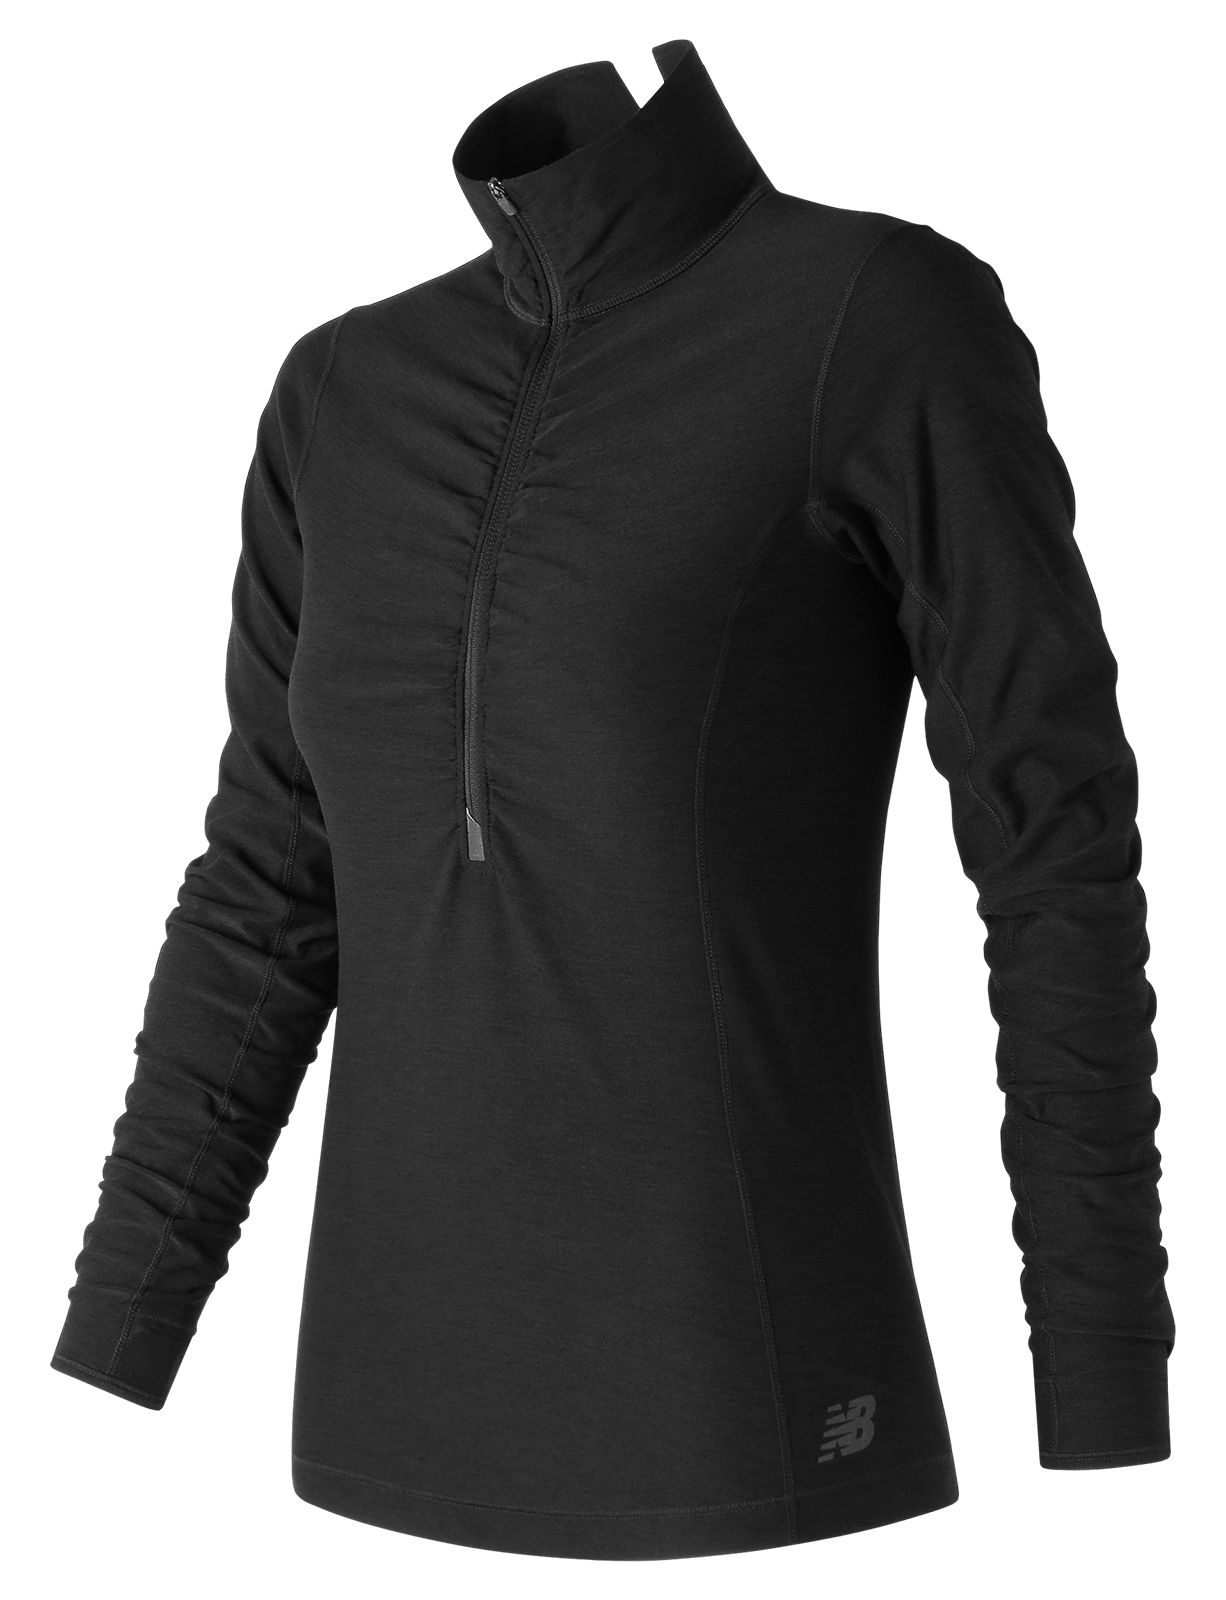 NB In Transit Half Zip, Black